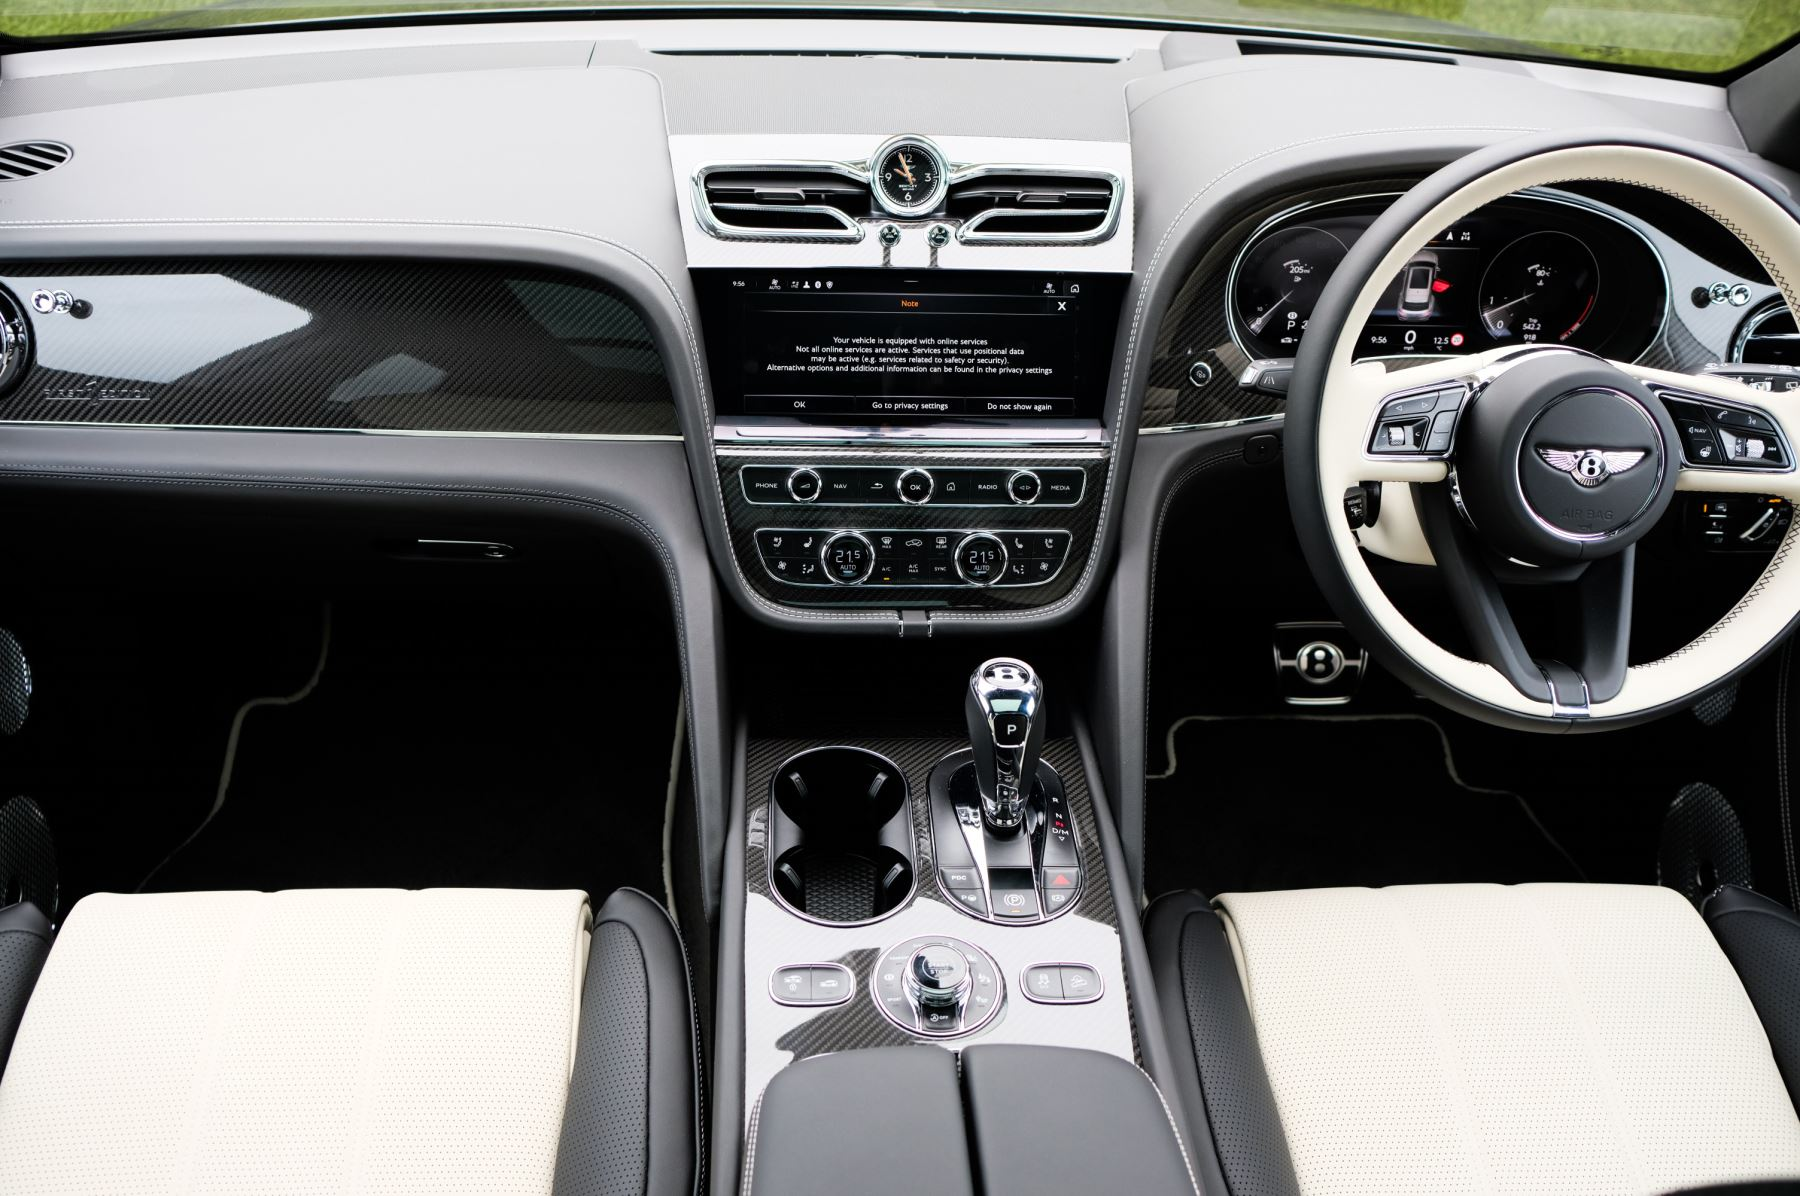 Bentley Bentayga 4.0 V8 5dr [4 Seat] - First Edition - All Terrain Specification image 15